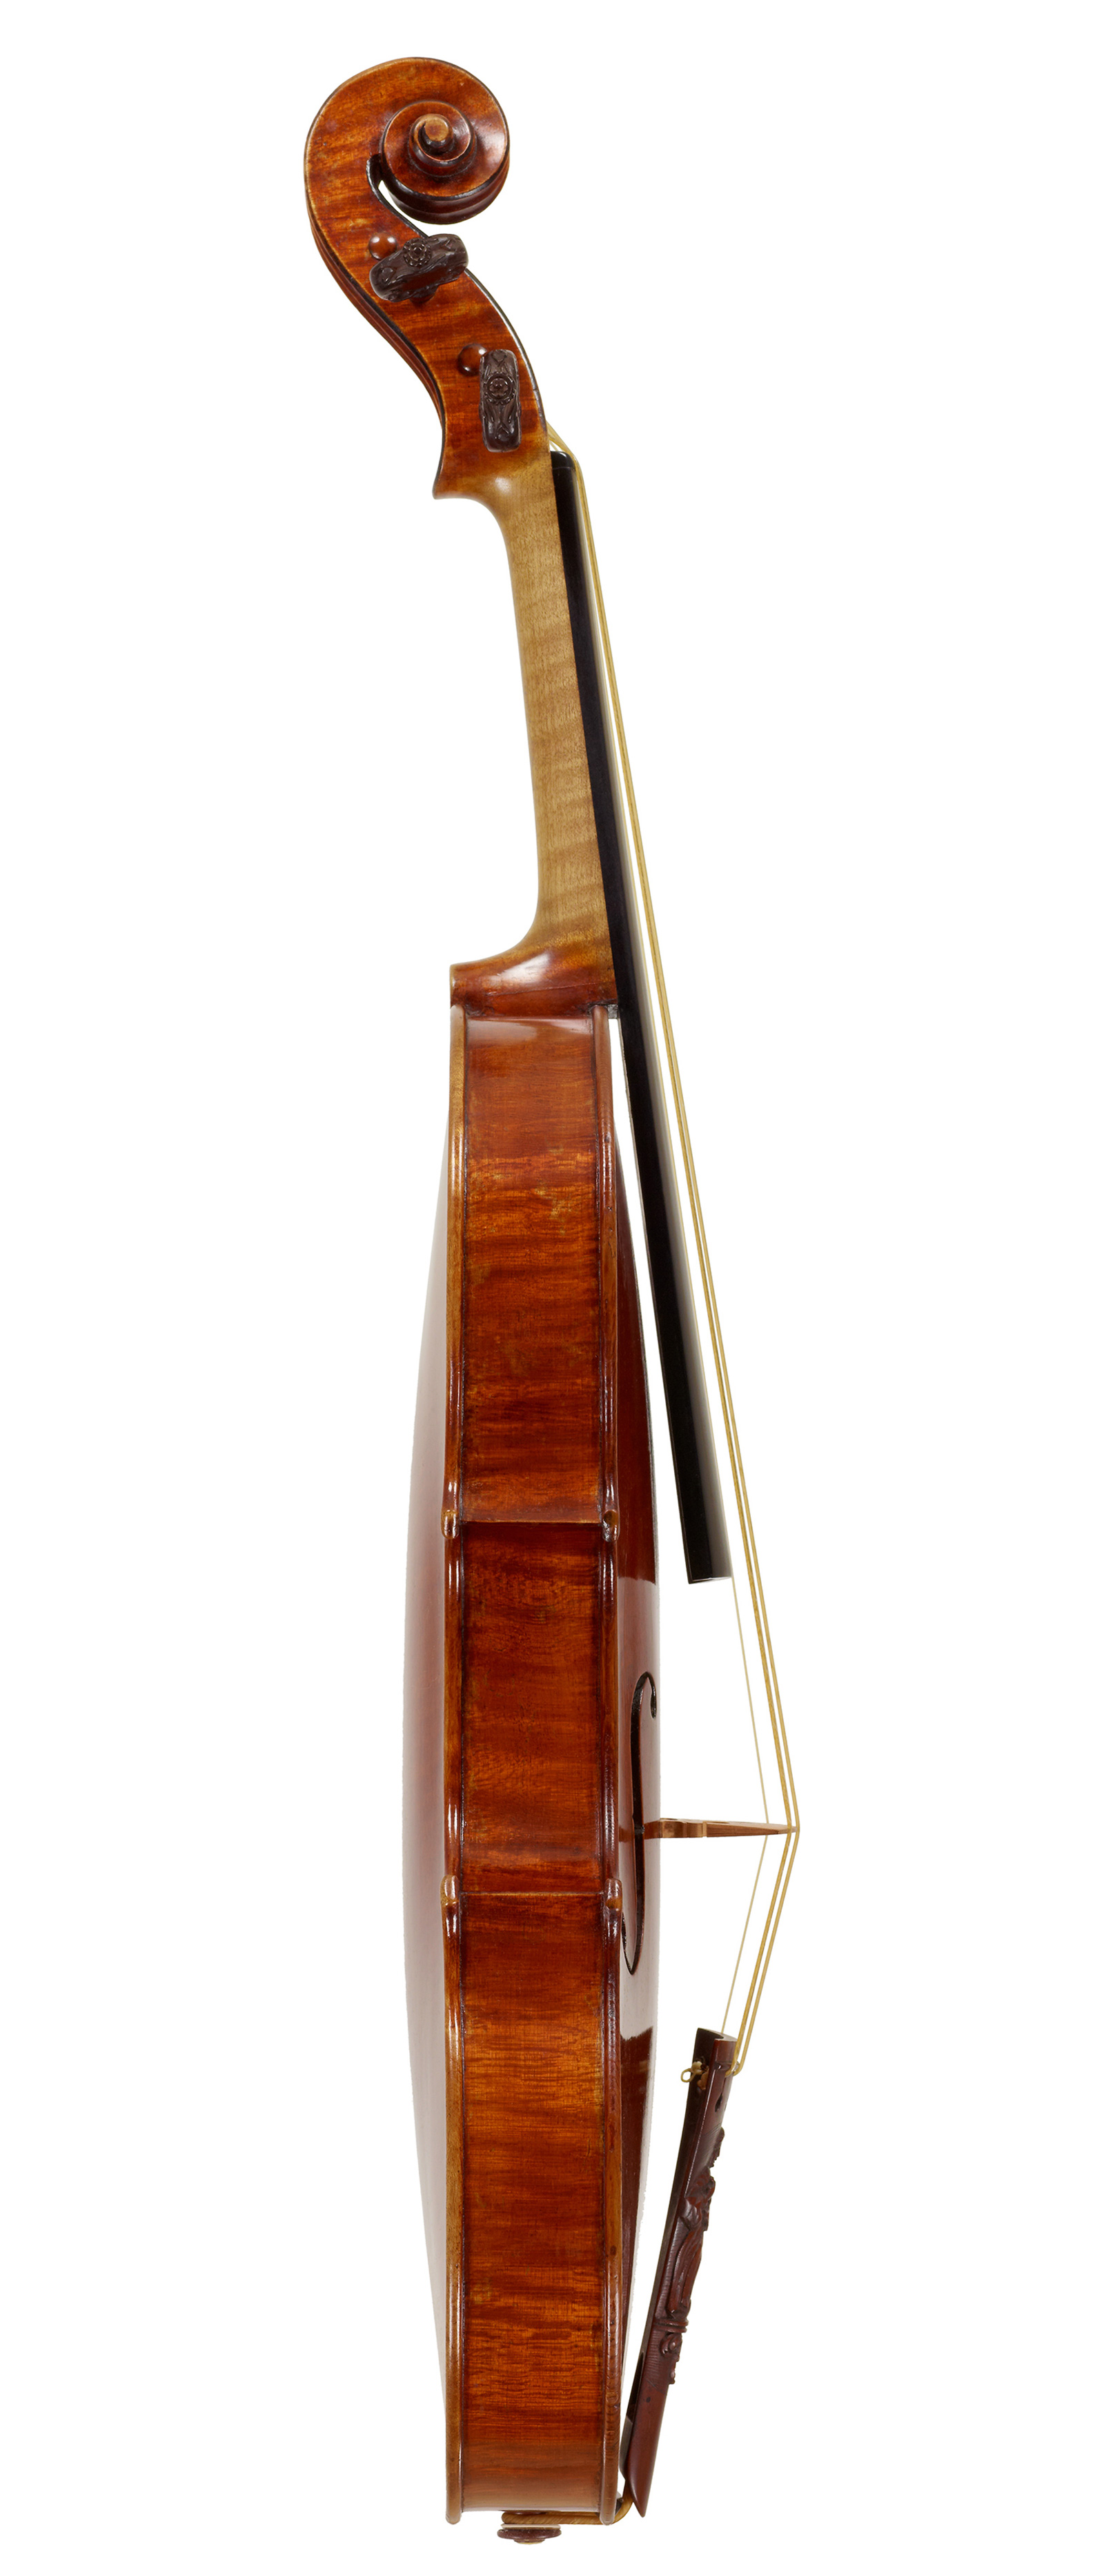 A well-preserved Stradivarius violin, the Lady Blunt